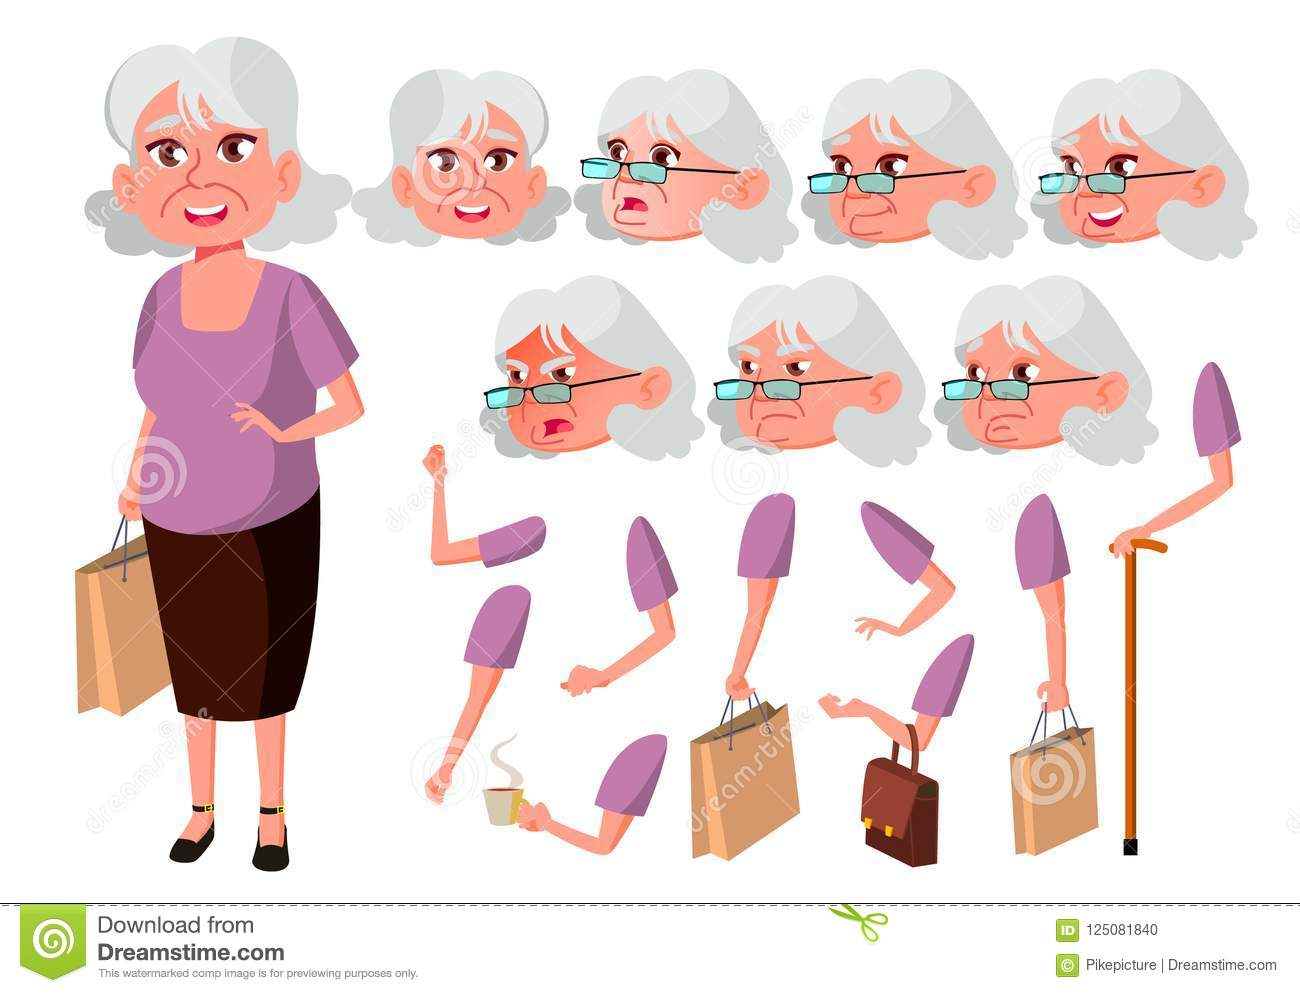 Image of: Couple Old Woman Vector Senior Person Aged Elderly People Cute Comic Dreamstimecom Old Woman Vector Senior Person Aged Elderly People Cute Comic